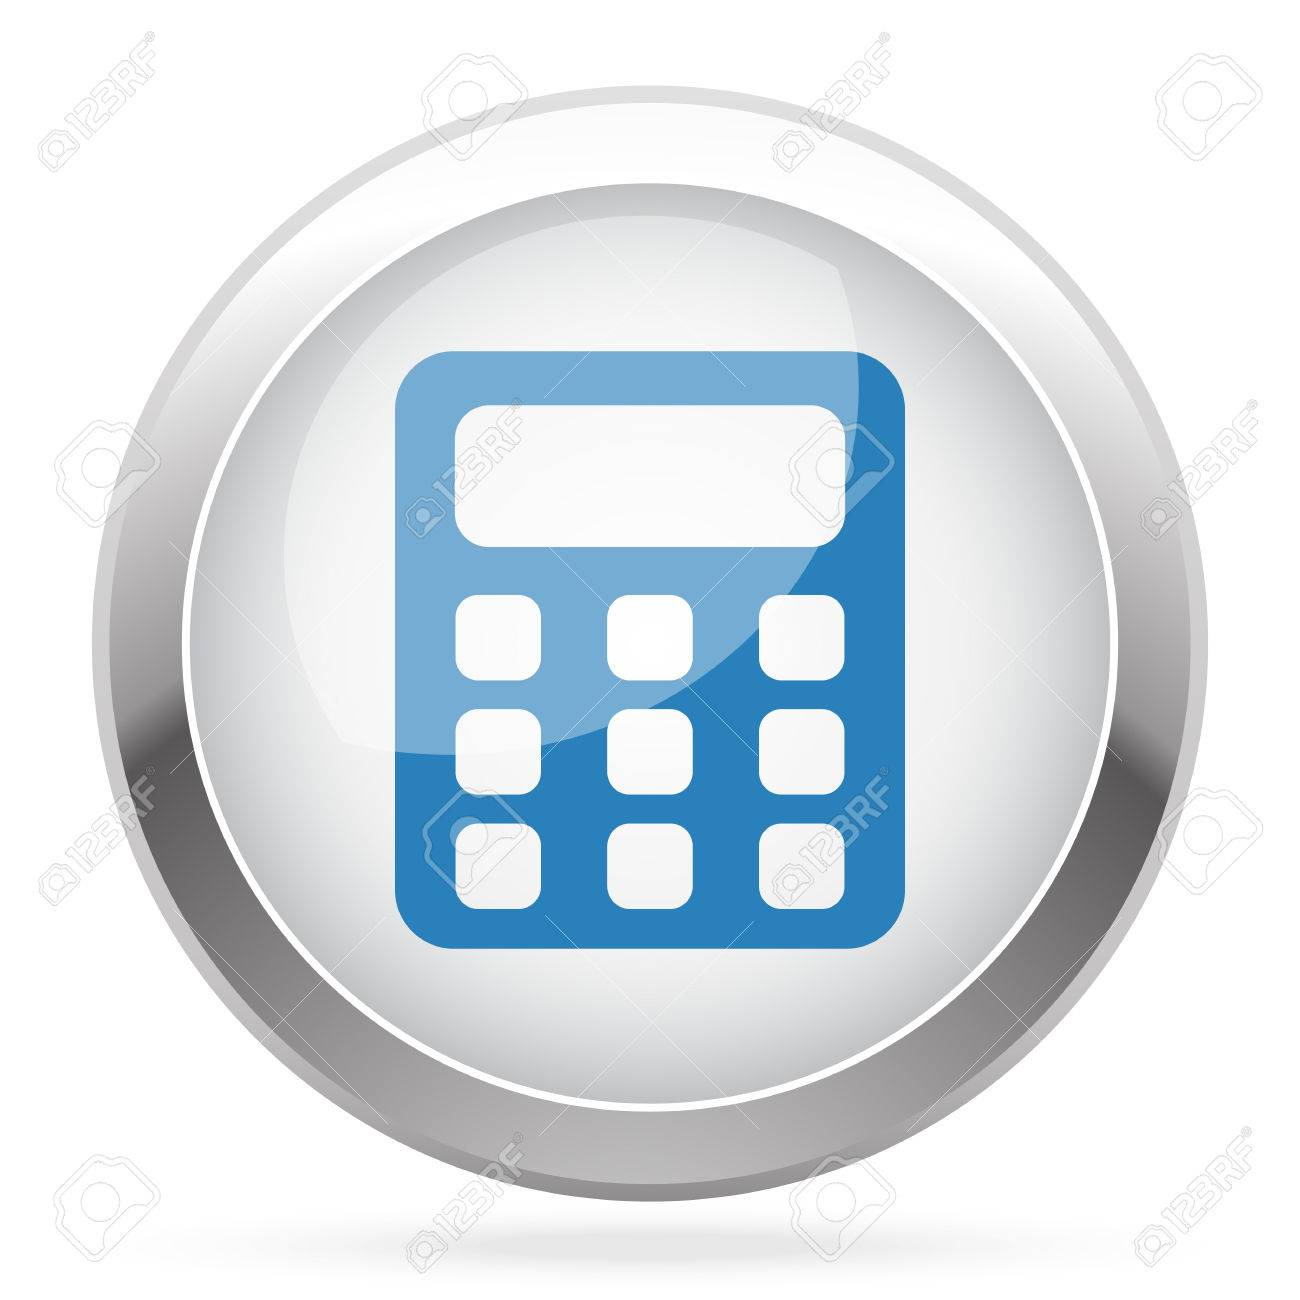 Blue Calculator icon on white glossy chrome app button